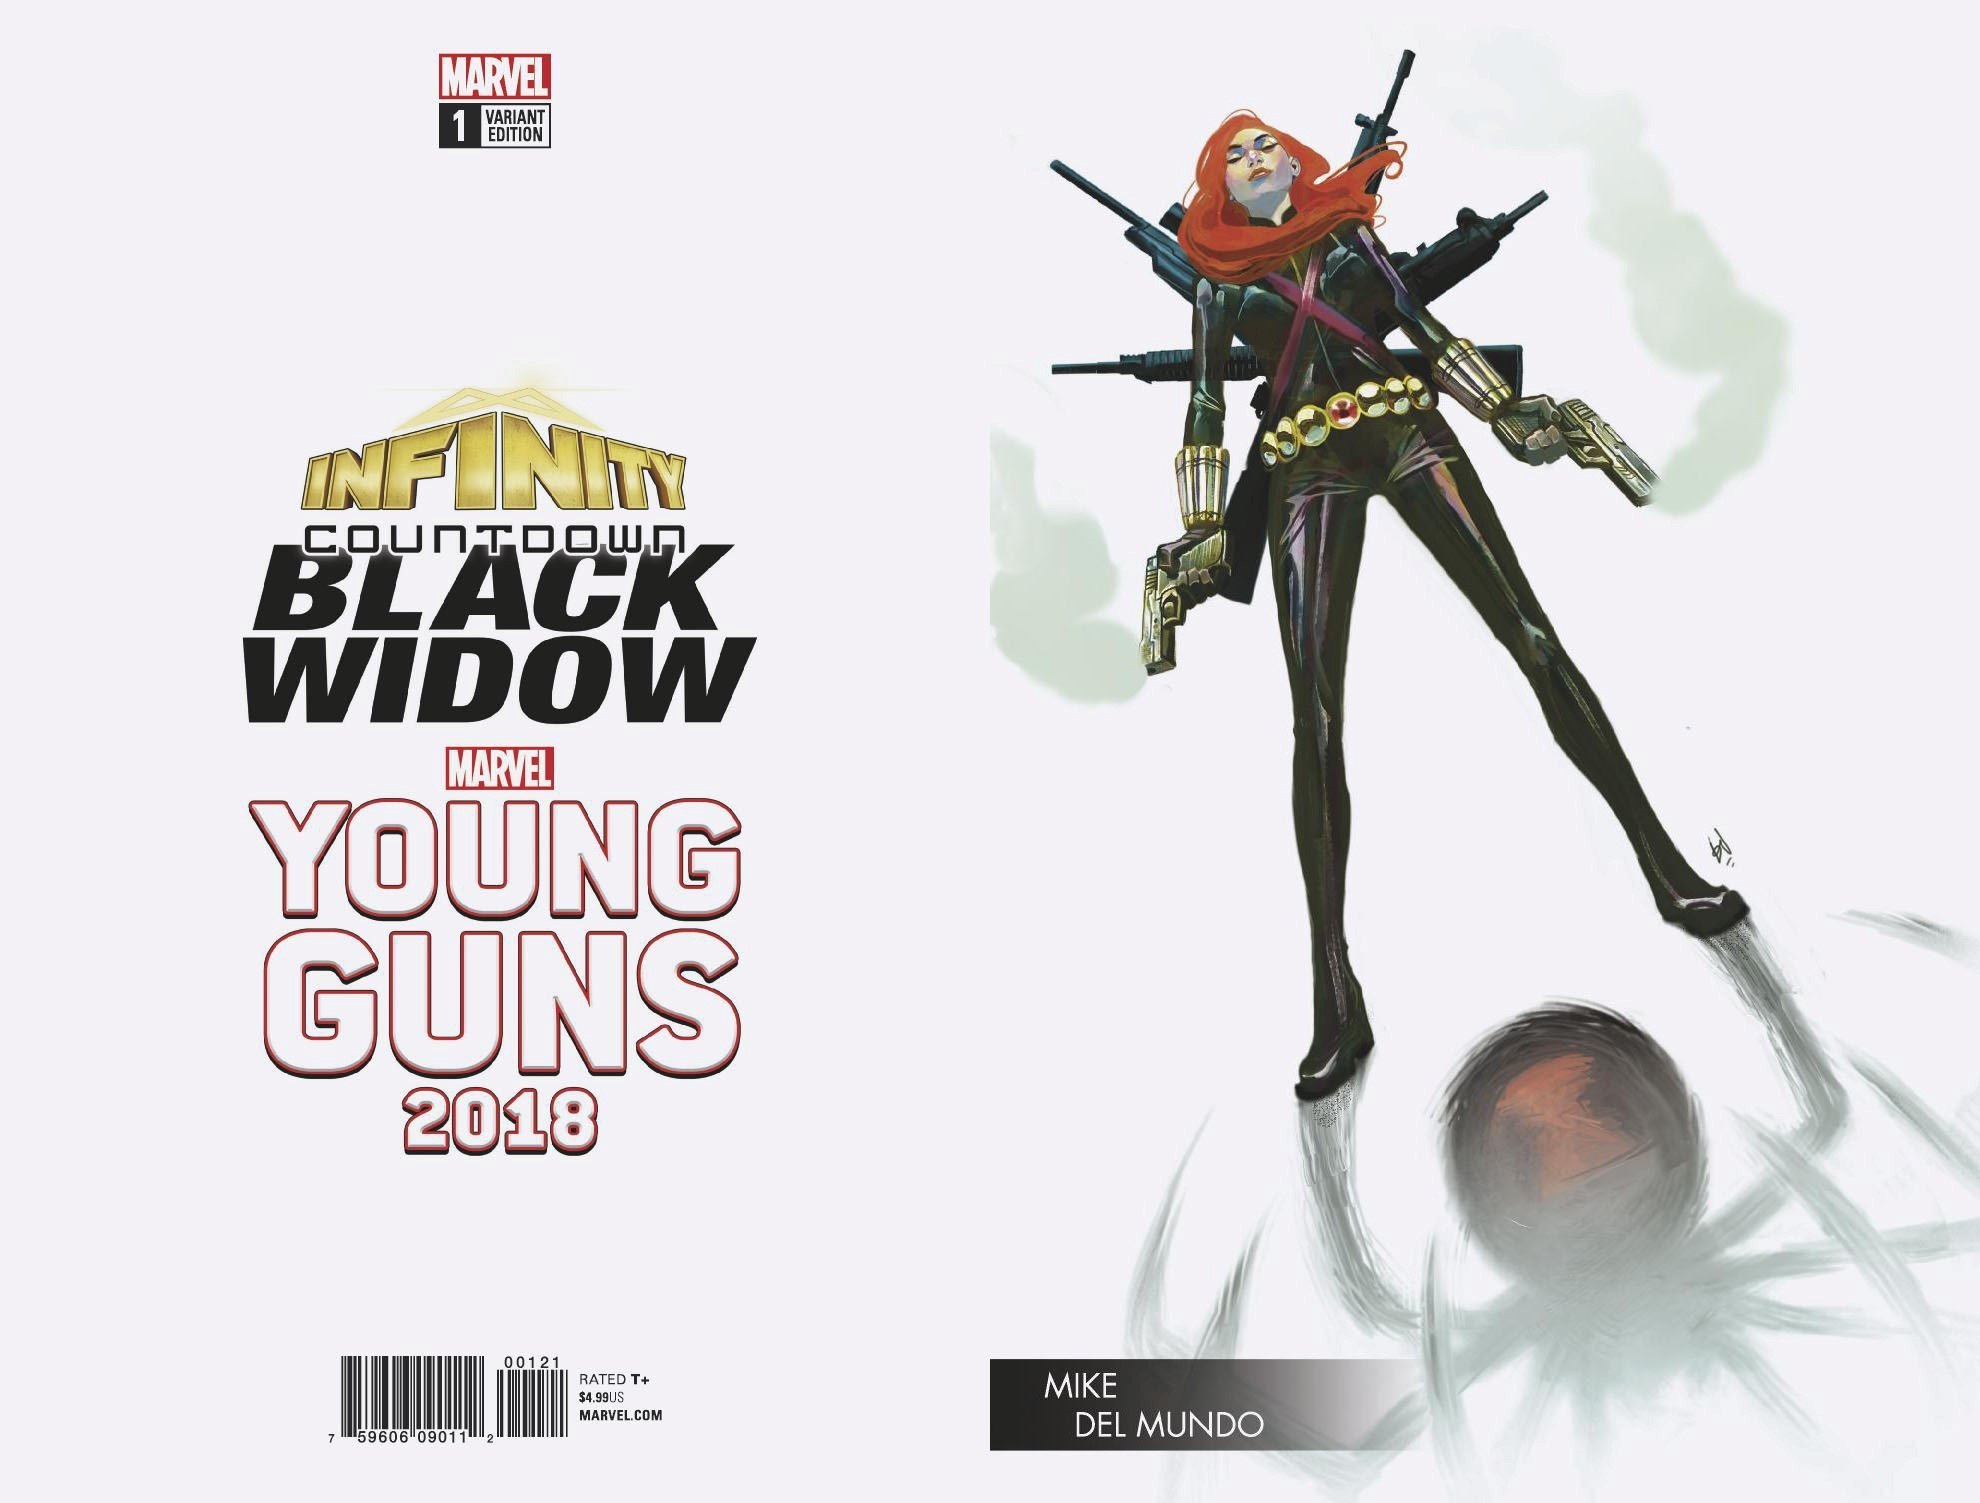 INFINITY COUNTDOWN BLACK WIDOW #1 DEL MUNDO YOUNG GUNS VAR